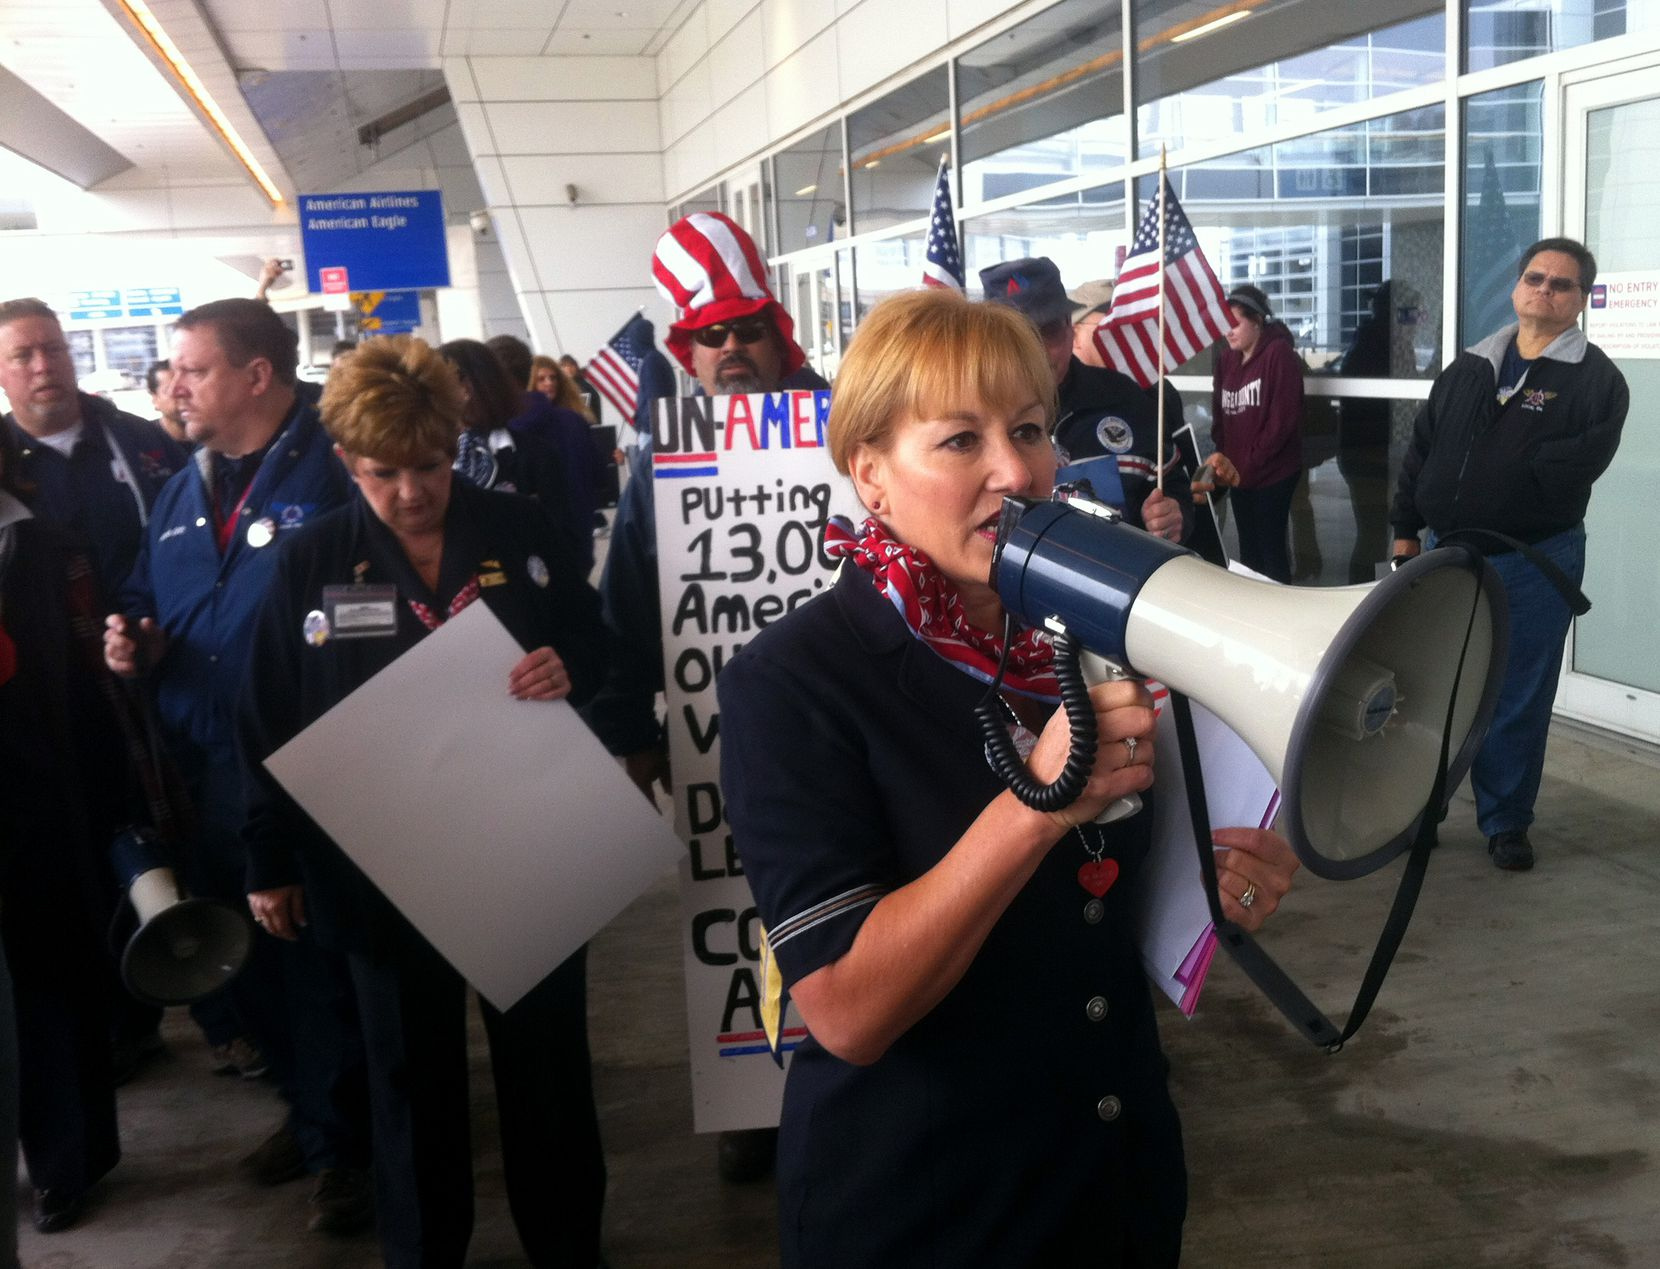 Lori Bassani, who heads the flight attendants union at American Airlines, led a protest in 2012 at DFW International Airport.